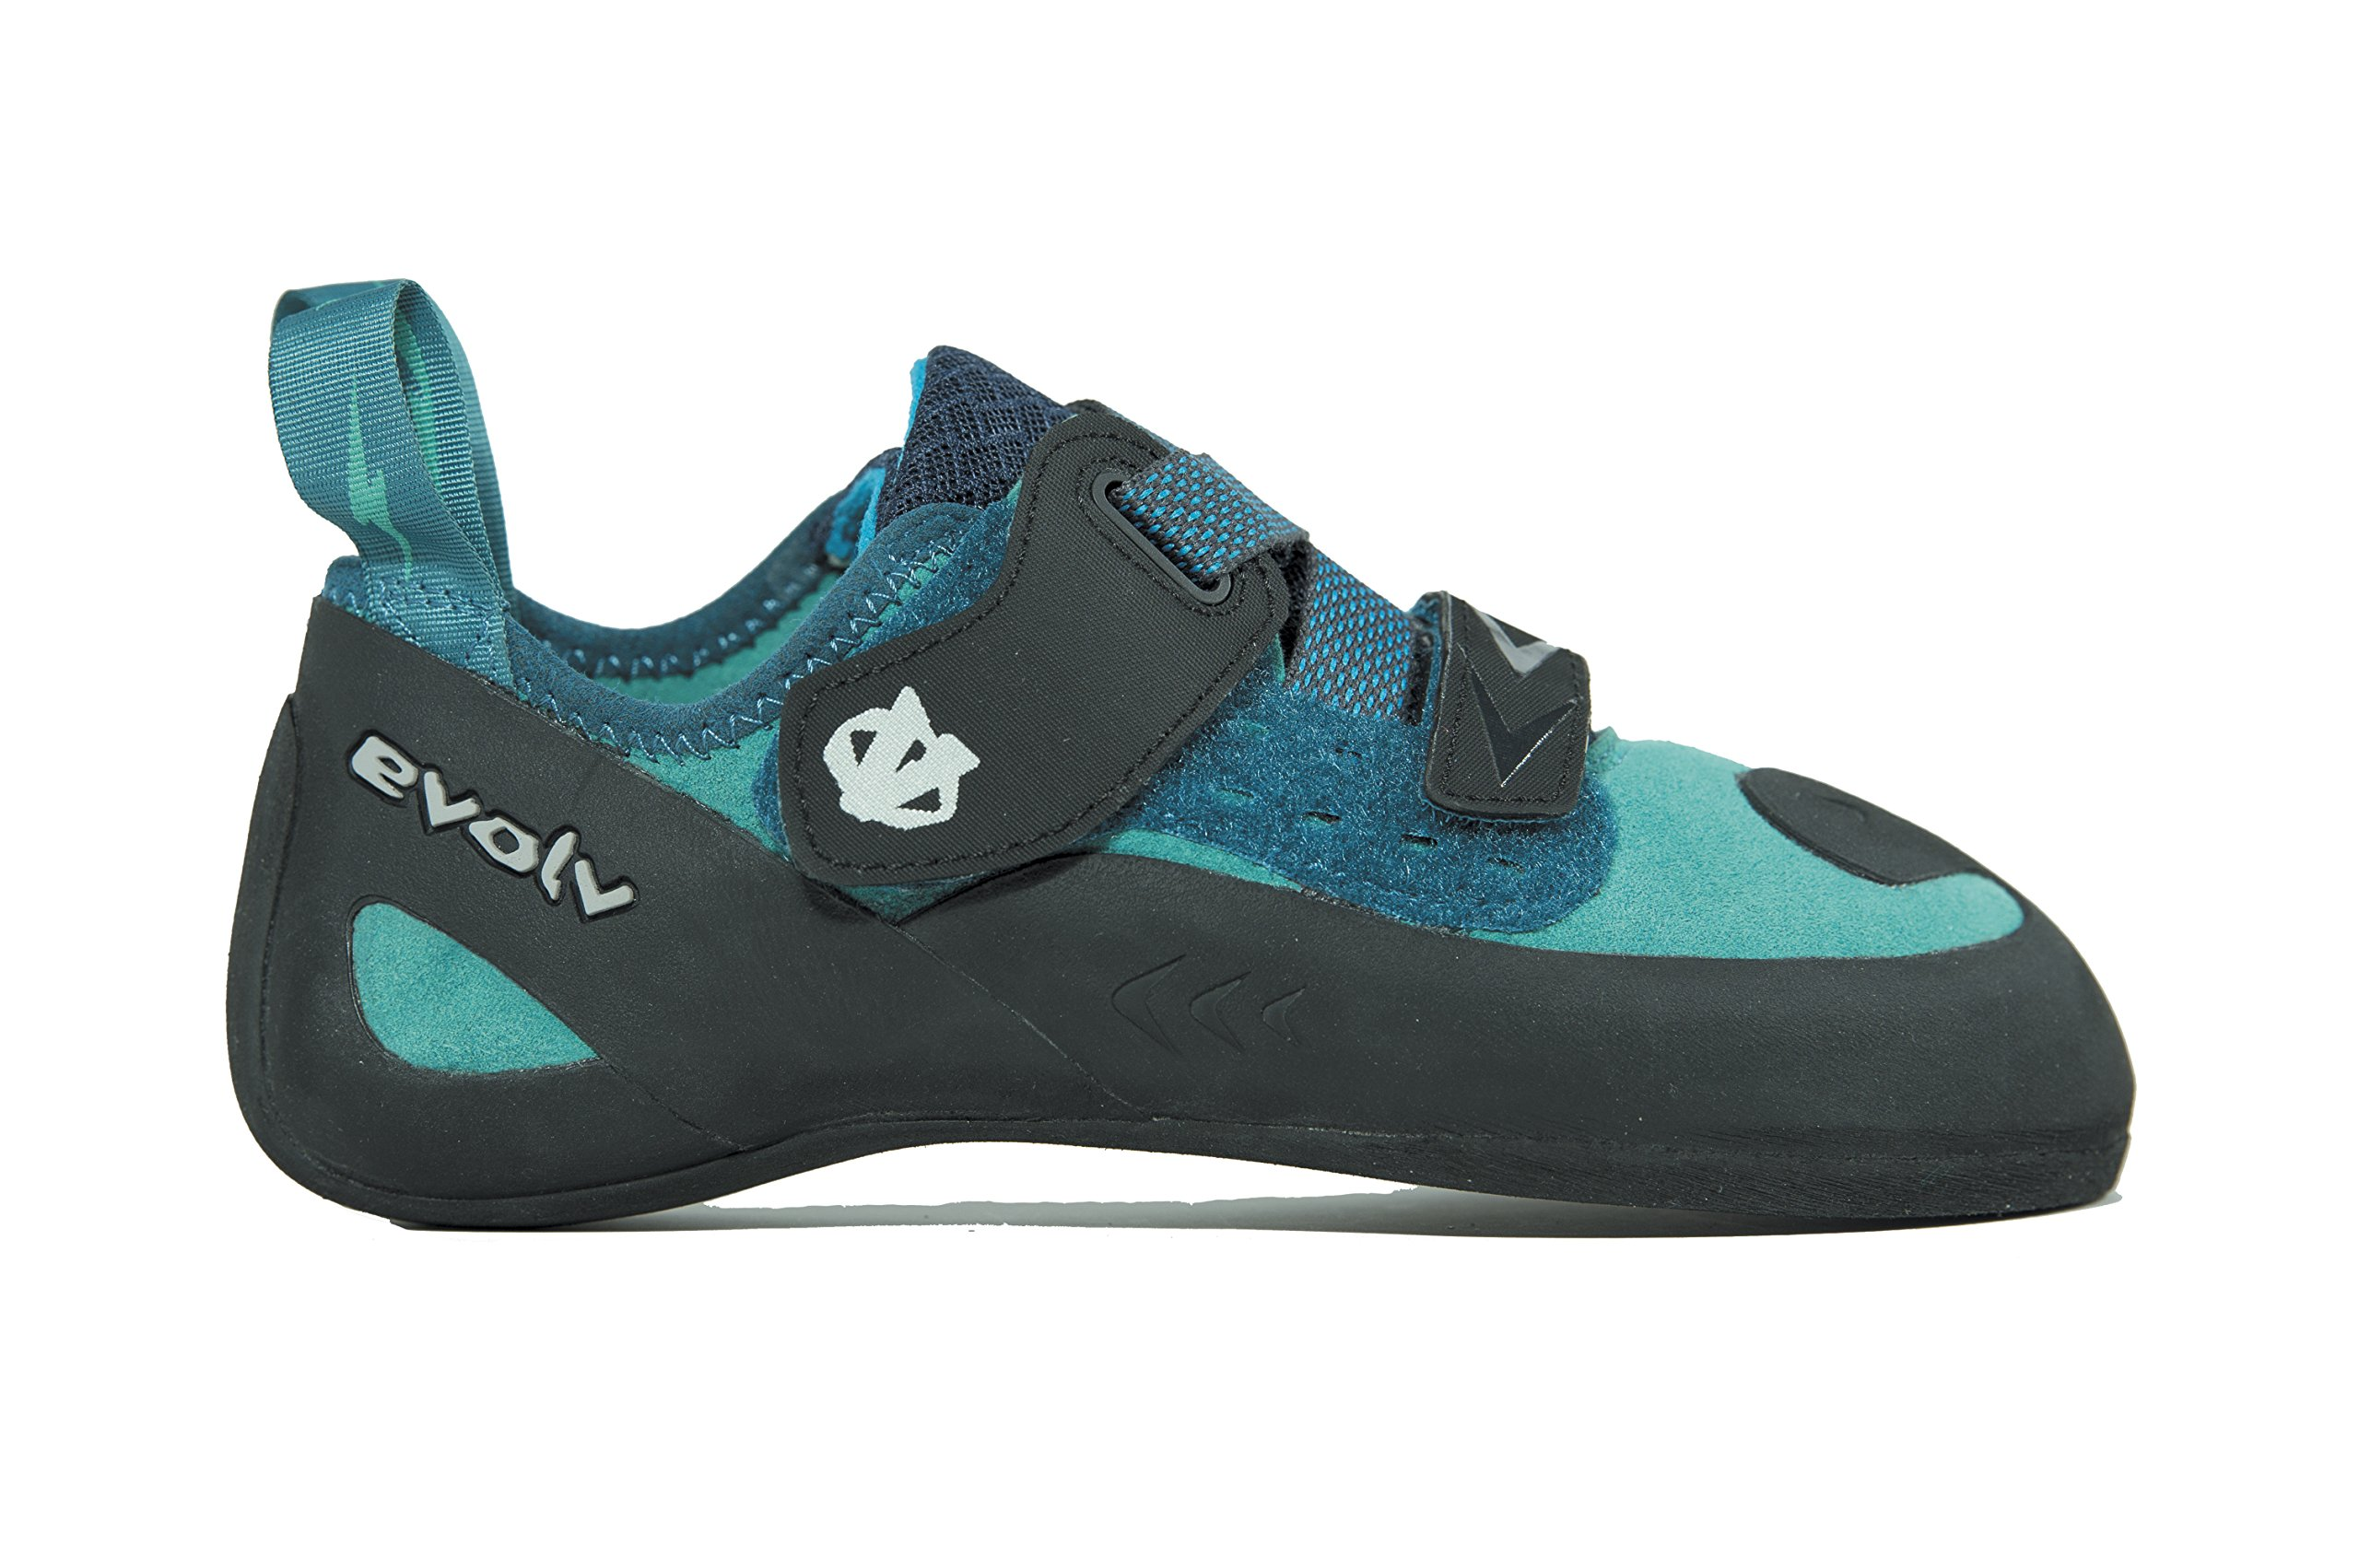 Evolv Kira Climbing Shoe - Women's Teal 7.5